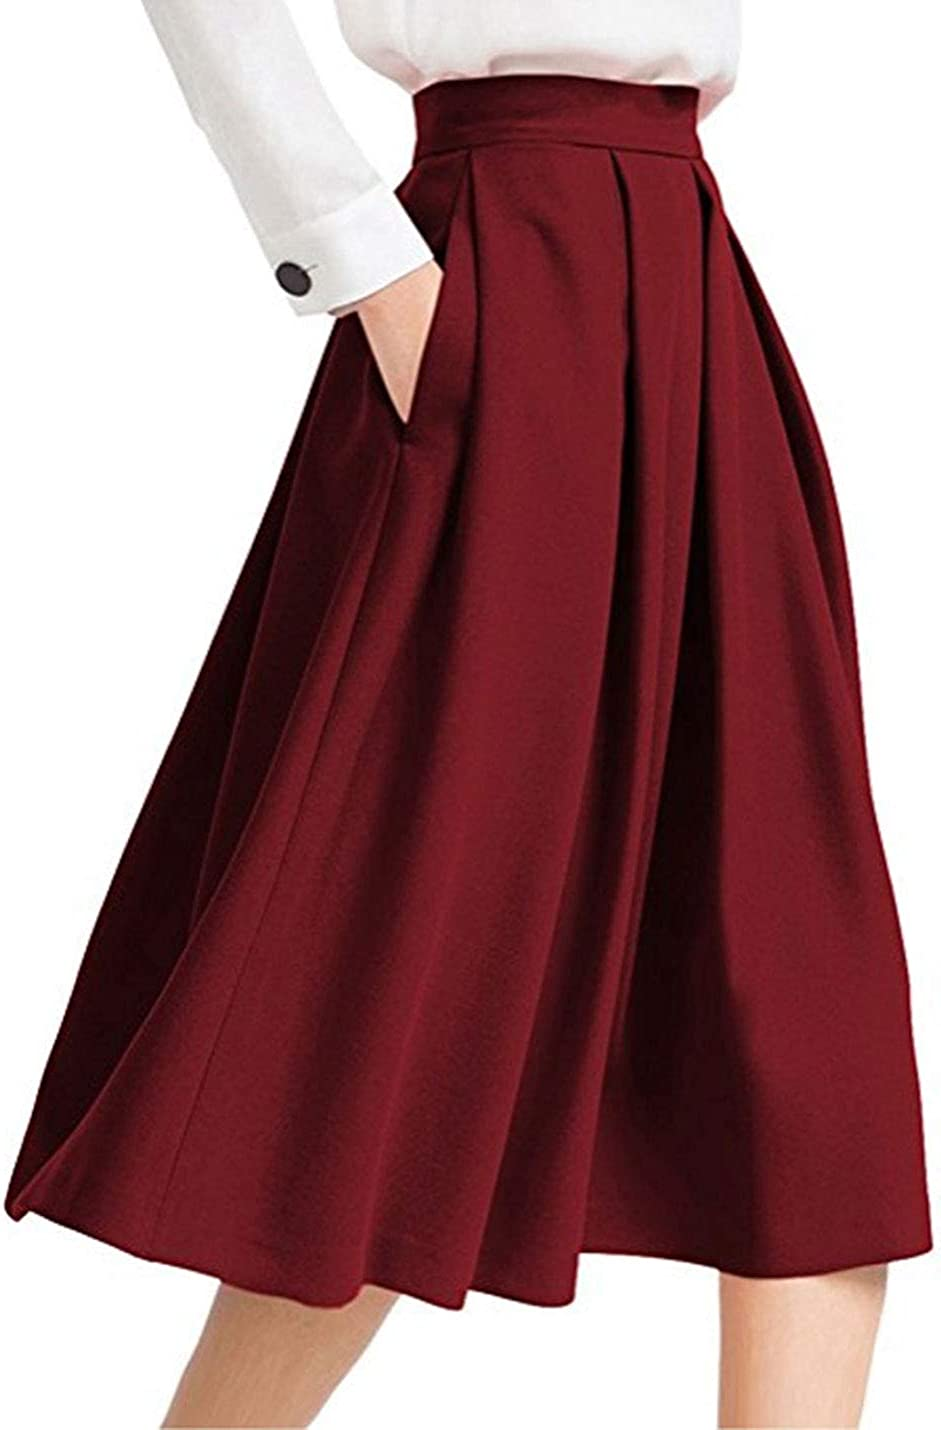 D.B.M Ladies Casual Mid-Length Invisible Pocket High Waist A-line Pleated Skirt